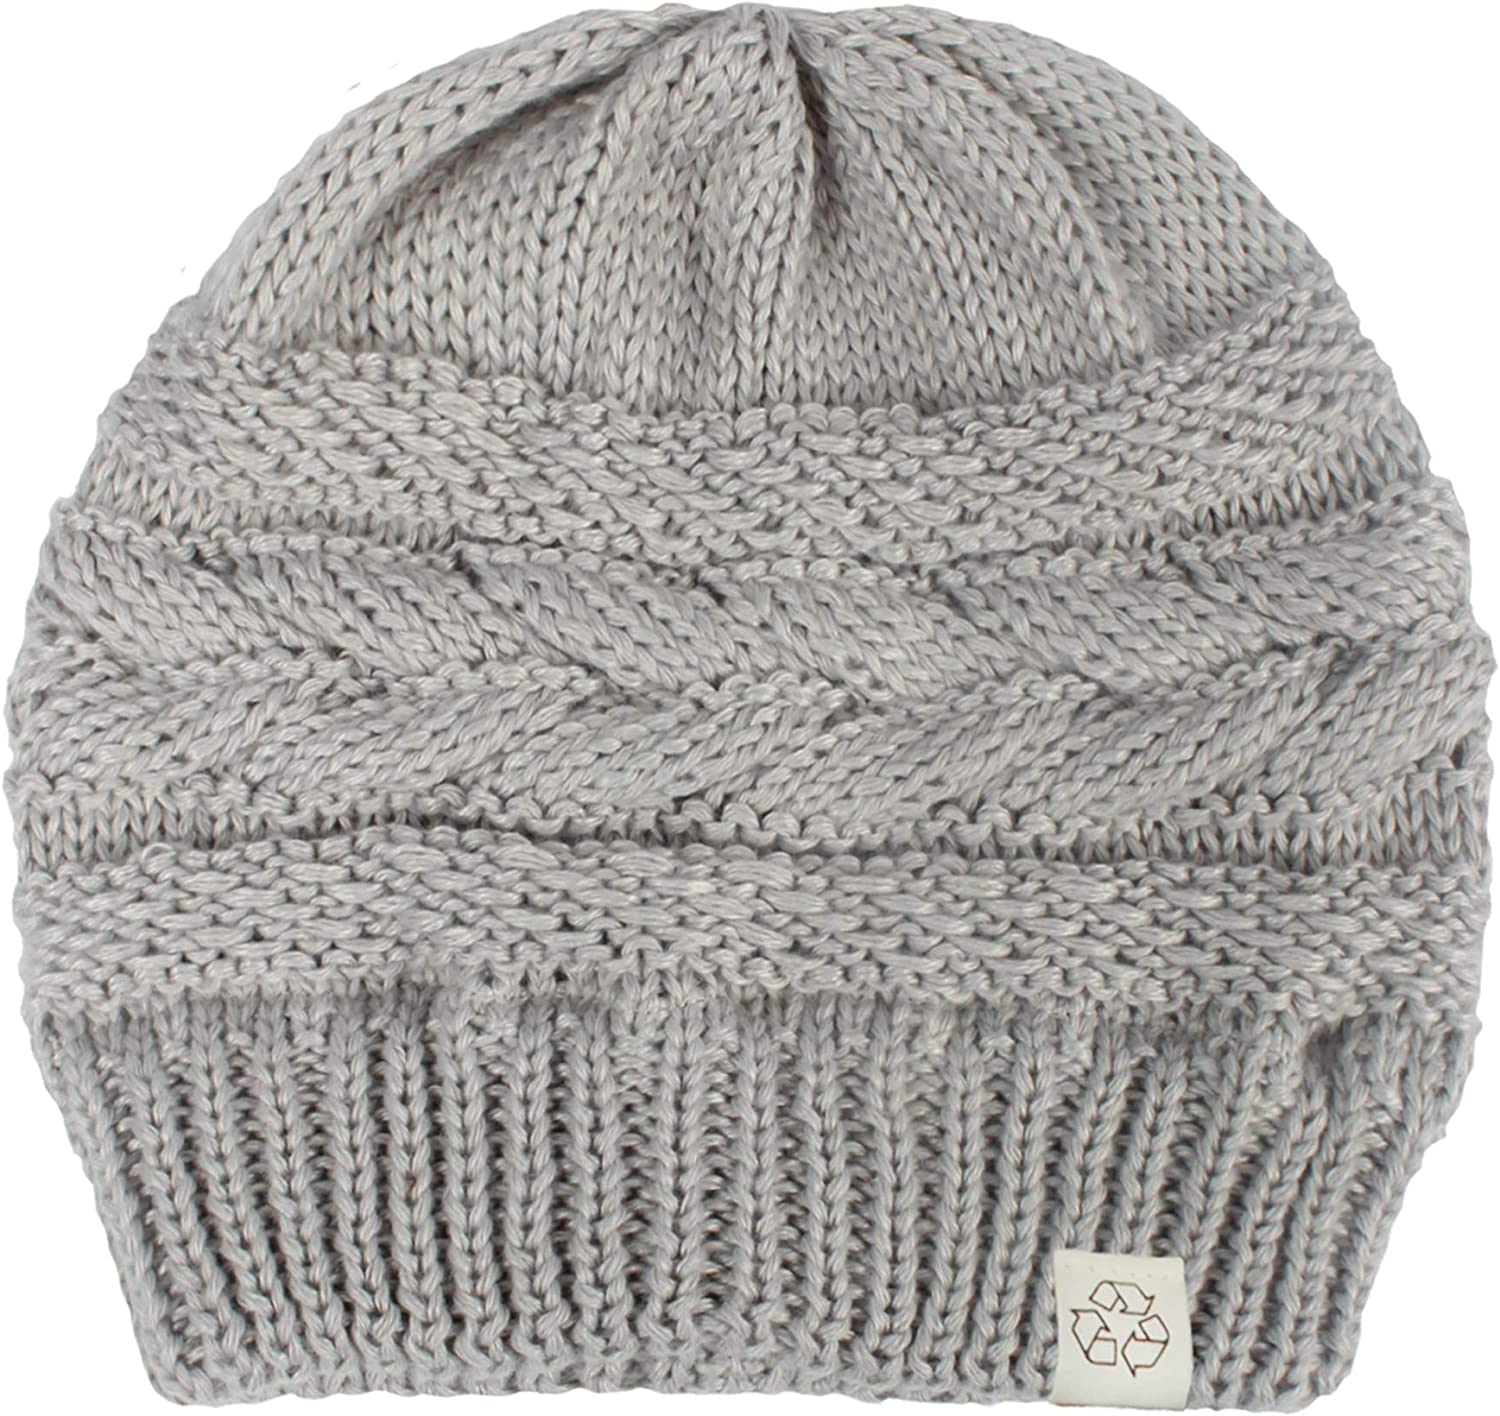 David Young Sustainable Recycled Fashion Cozy Beanie Sales for sale OFFicial store - Unisex